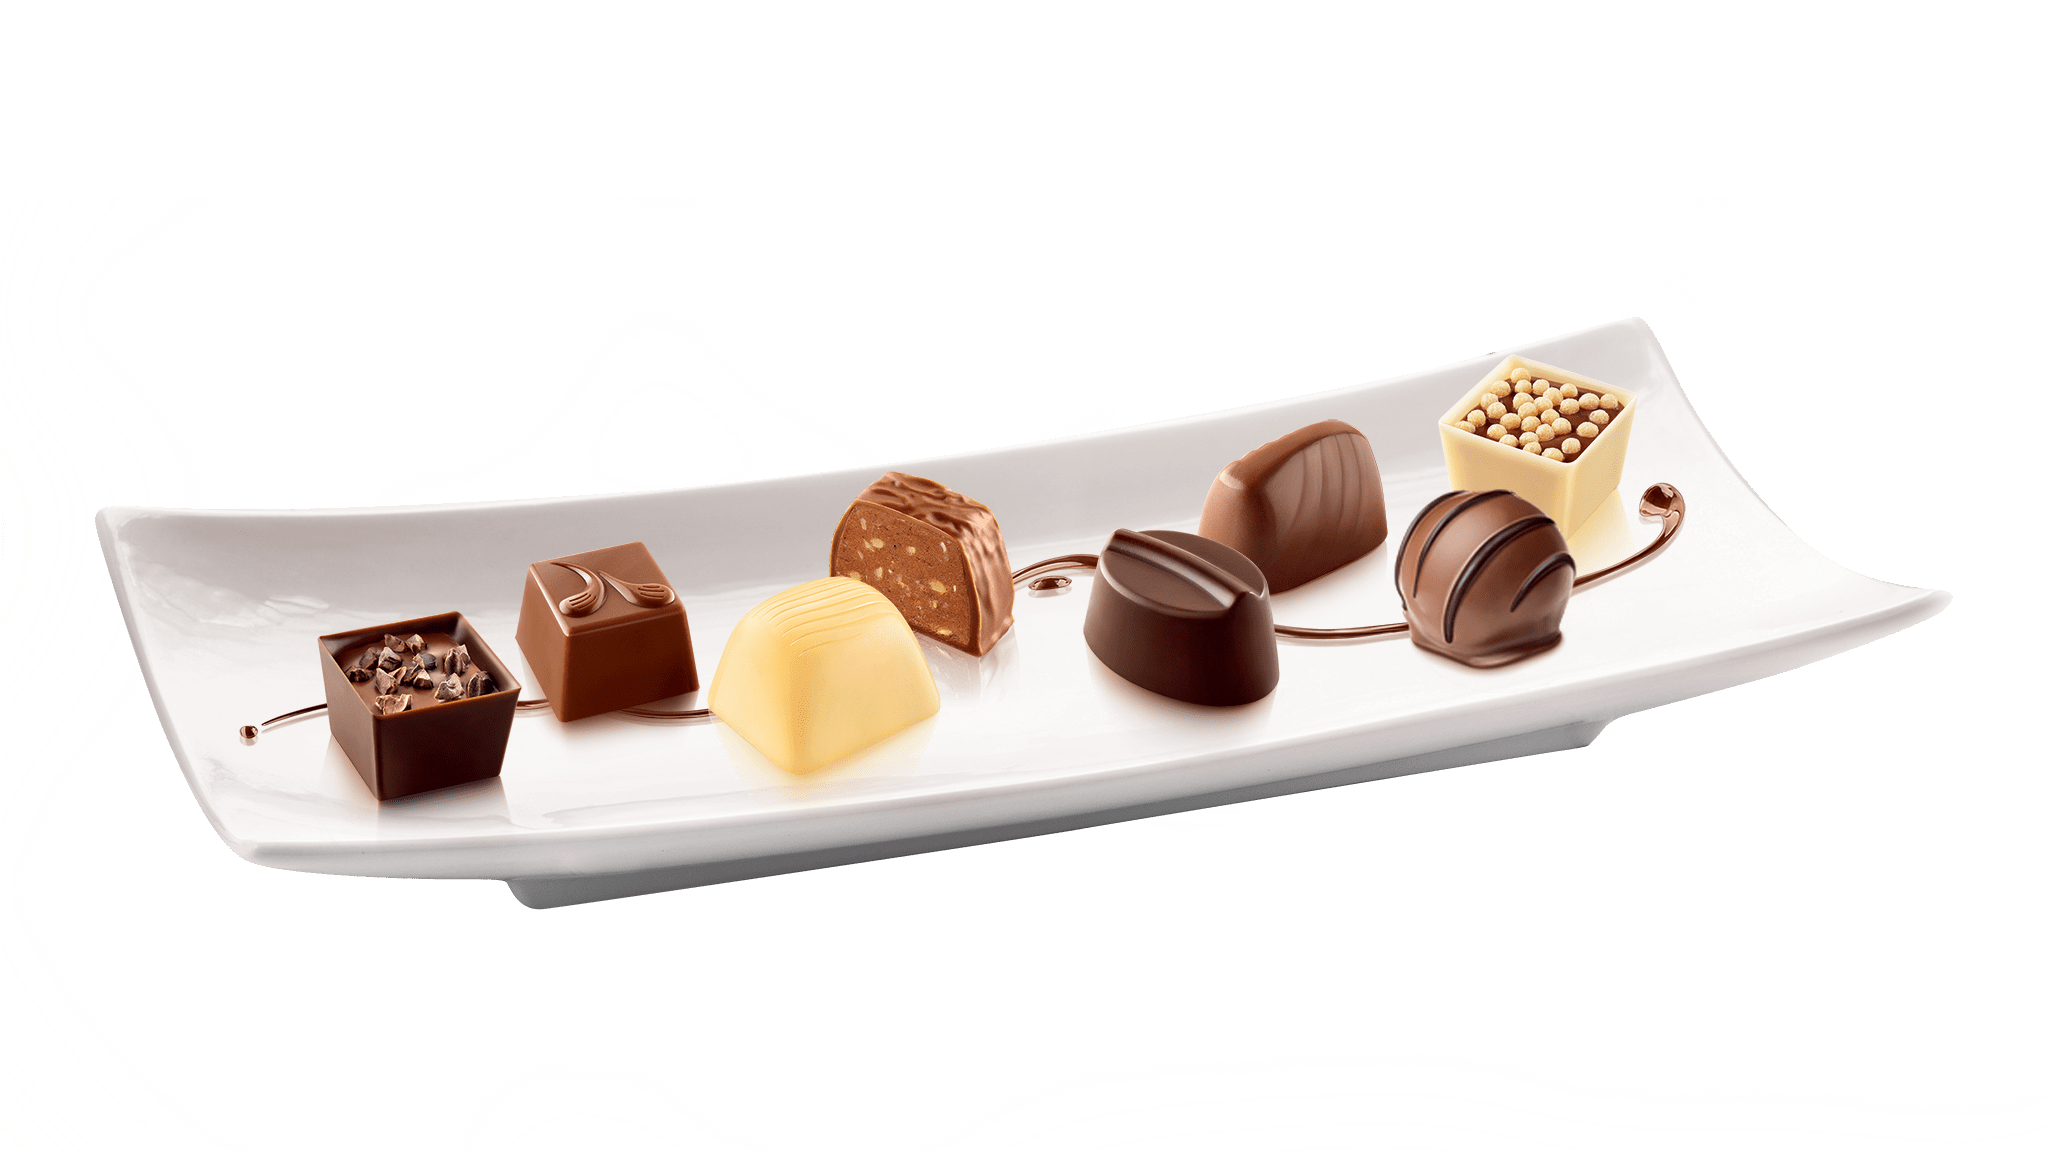 Chocolates on Plate